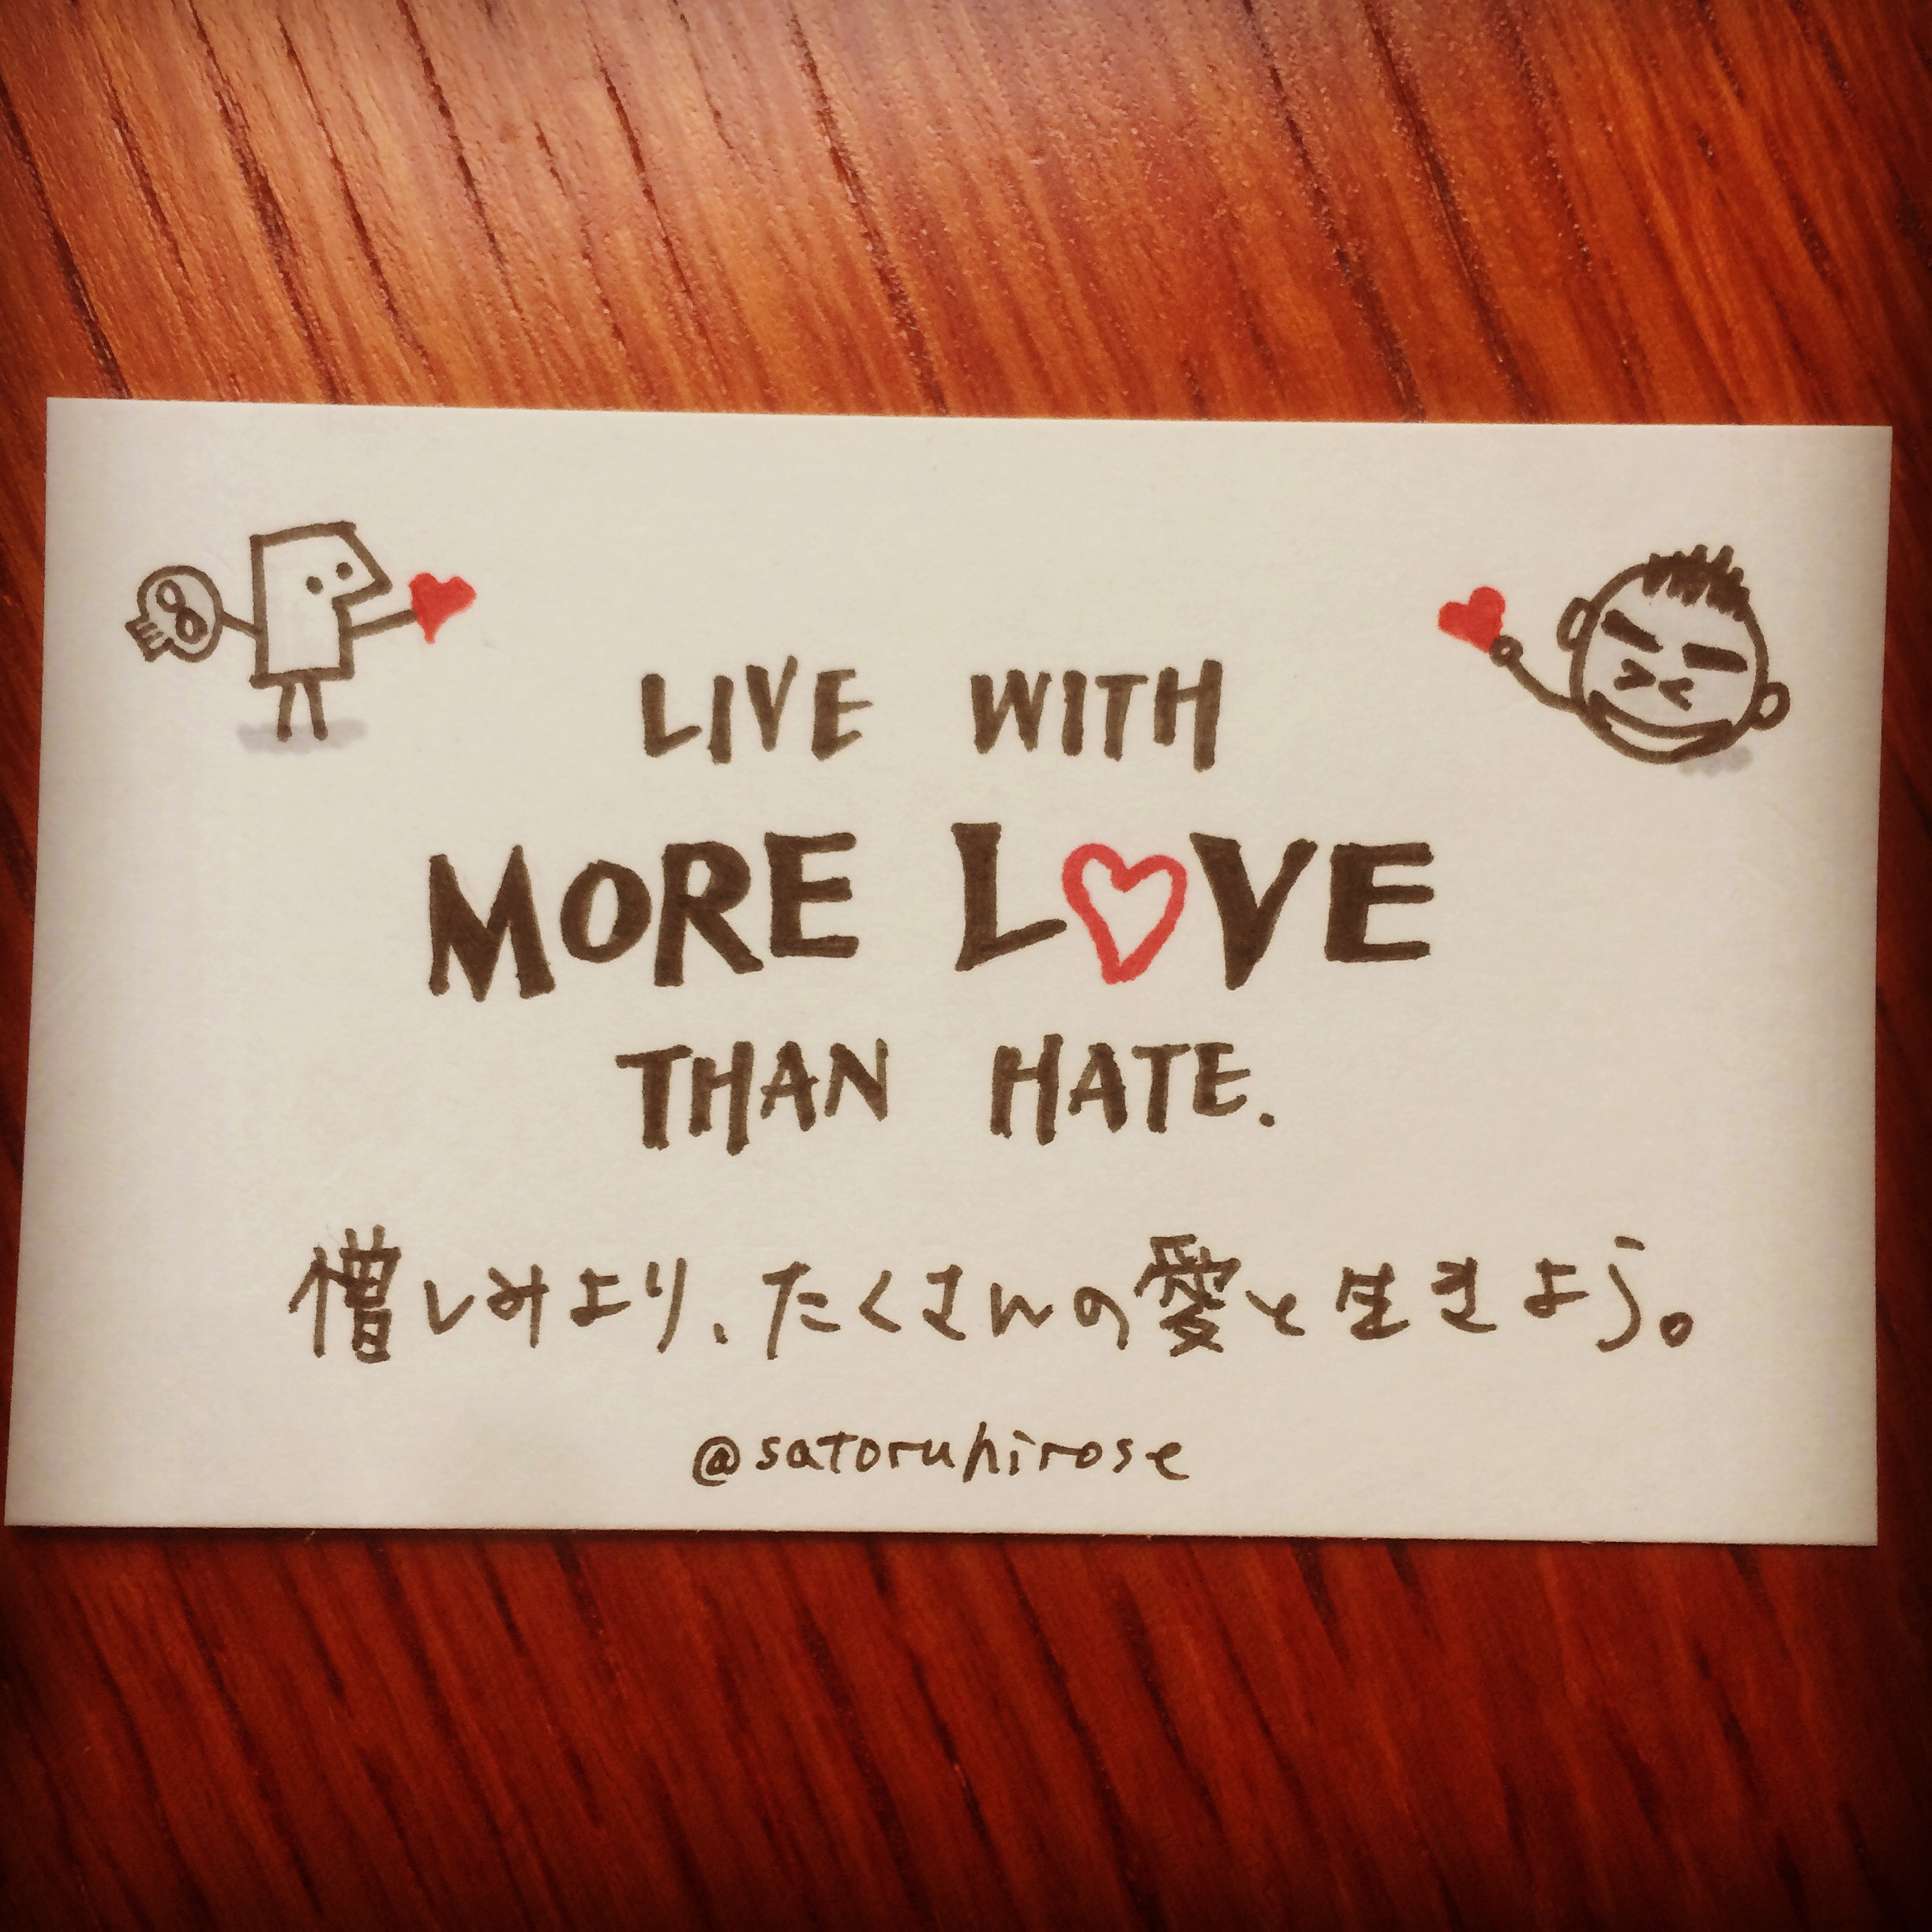 Live with more love than hate.